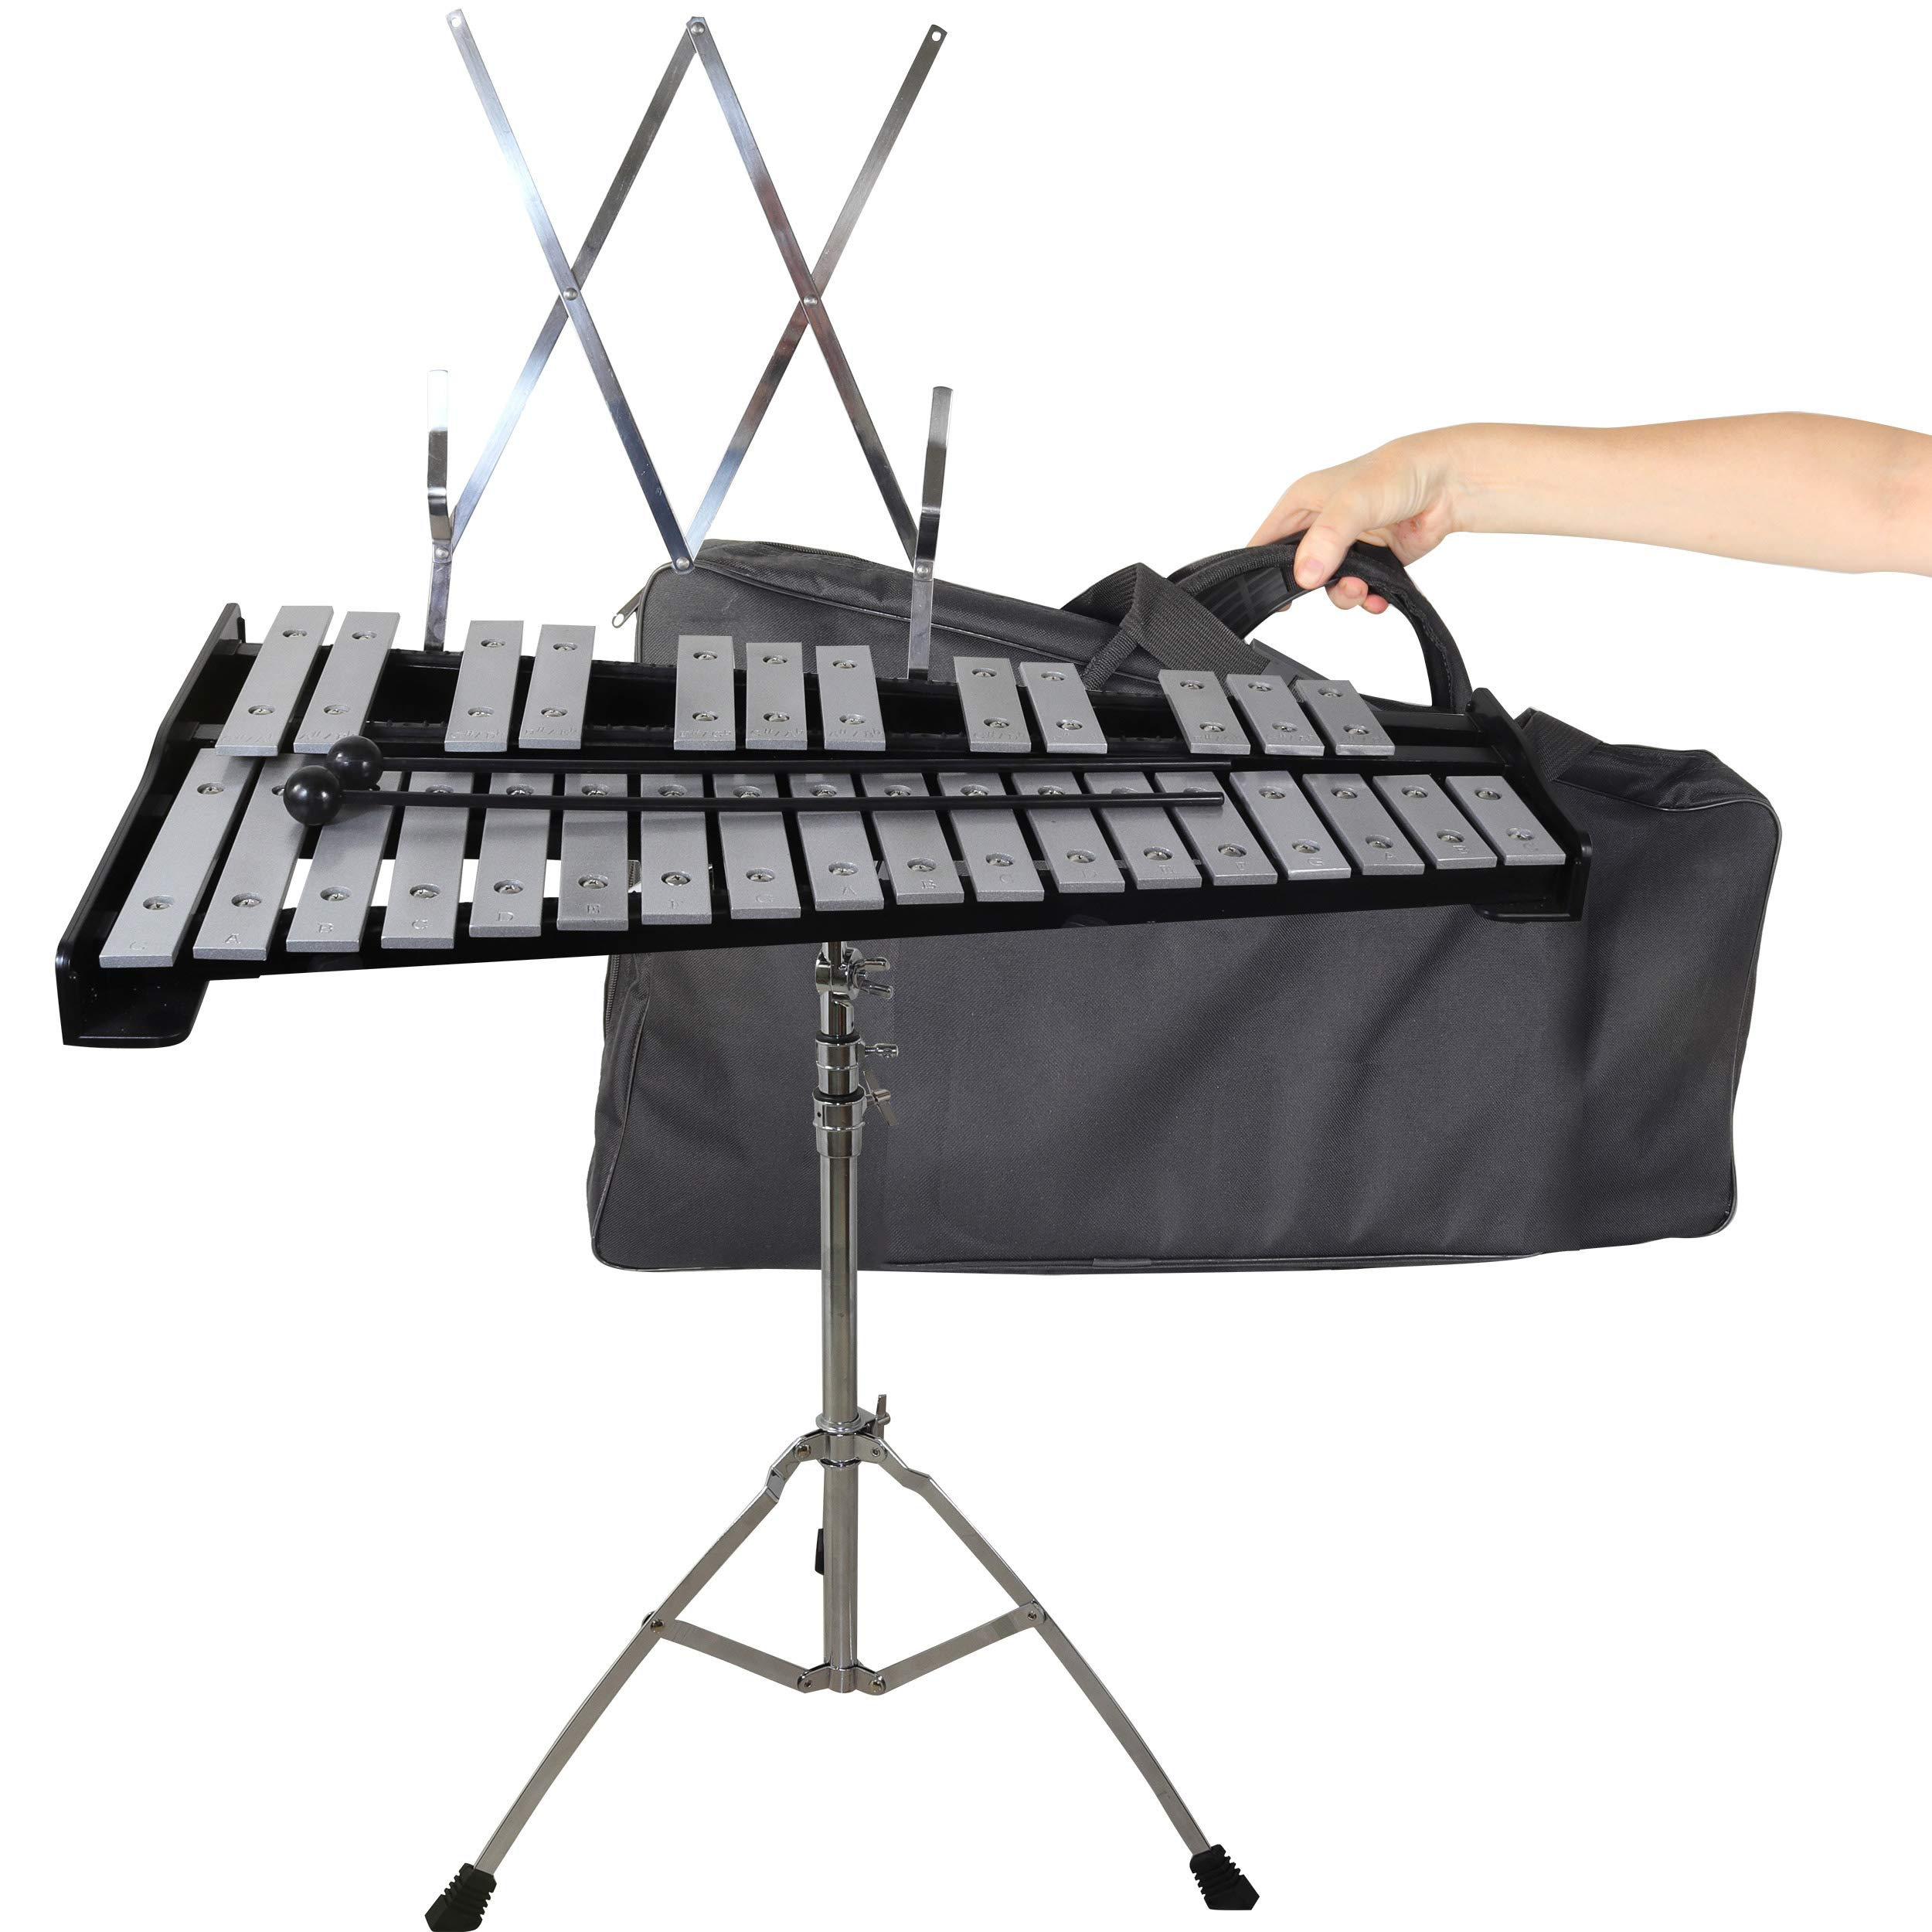 30 note Professional Glockenspiel - Metal Bell Kit Xylophone with Stand, Note Holder and Carrying Bag